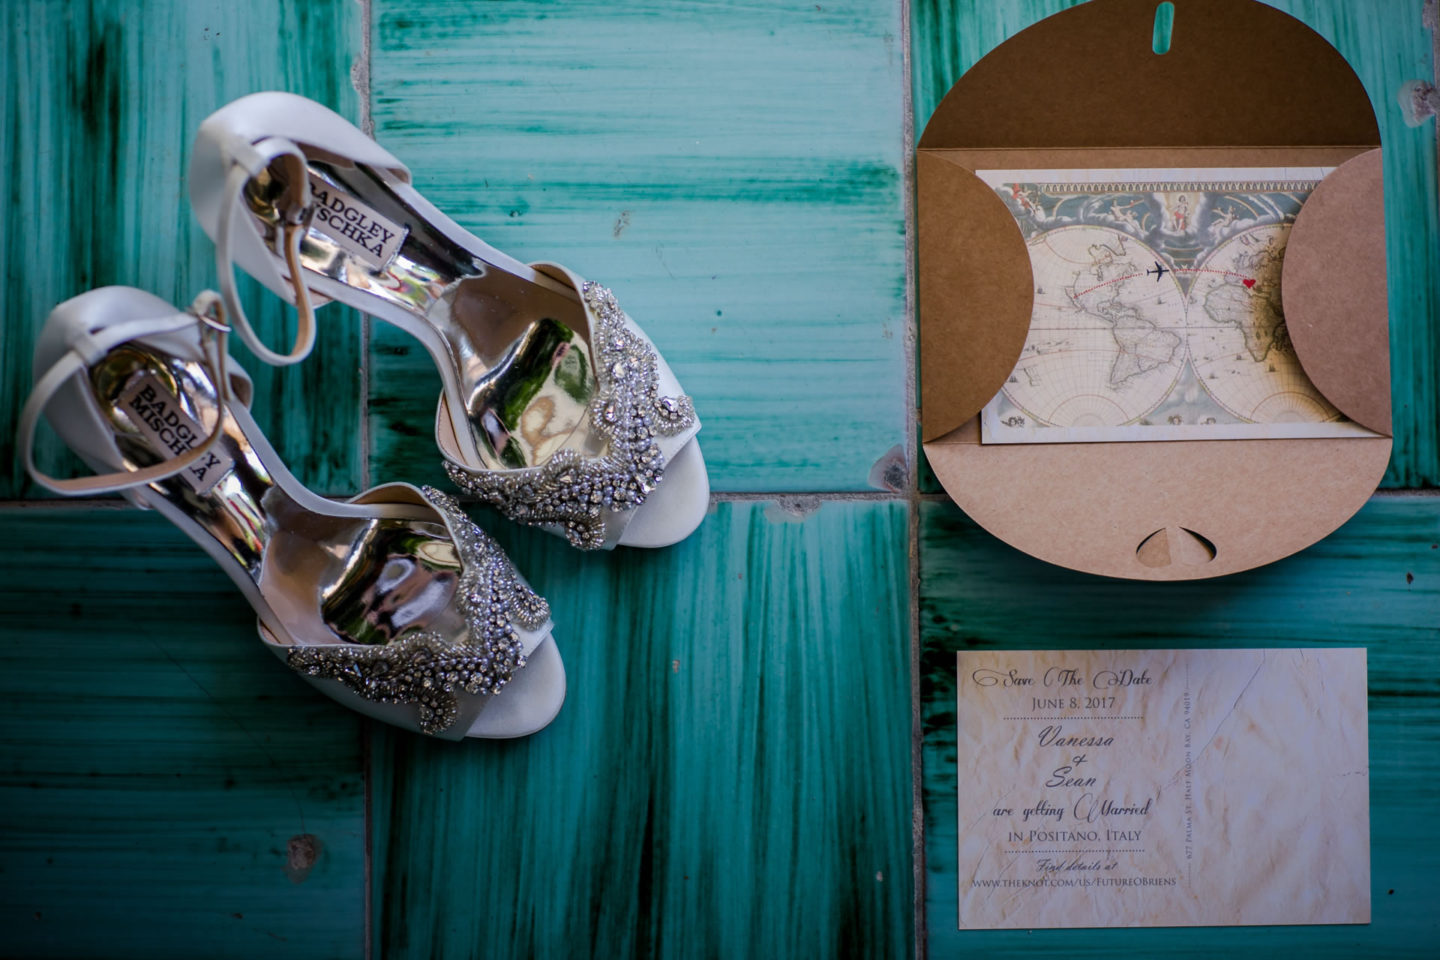 Shoes - 2 :: Wedding in Positano. Sea and love :: Luxury wedding photography - 1 :: Shoes - 2